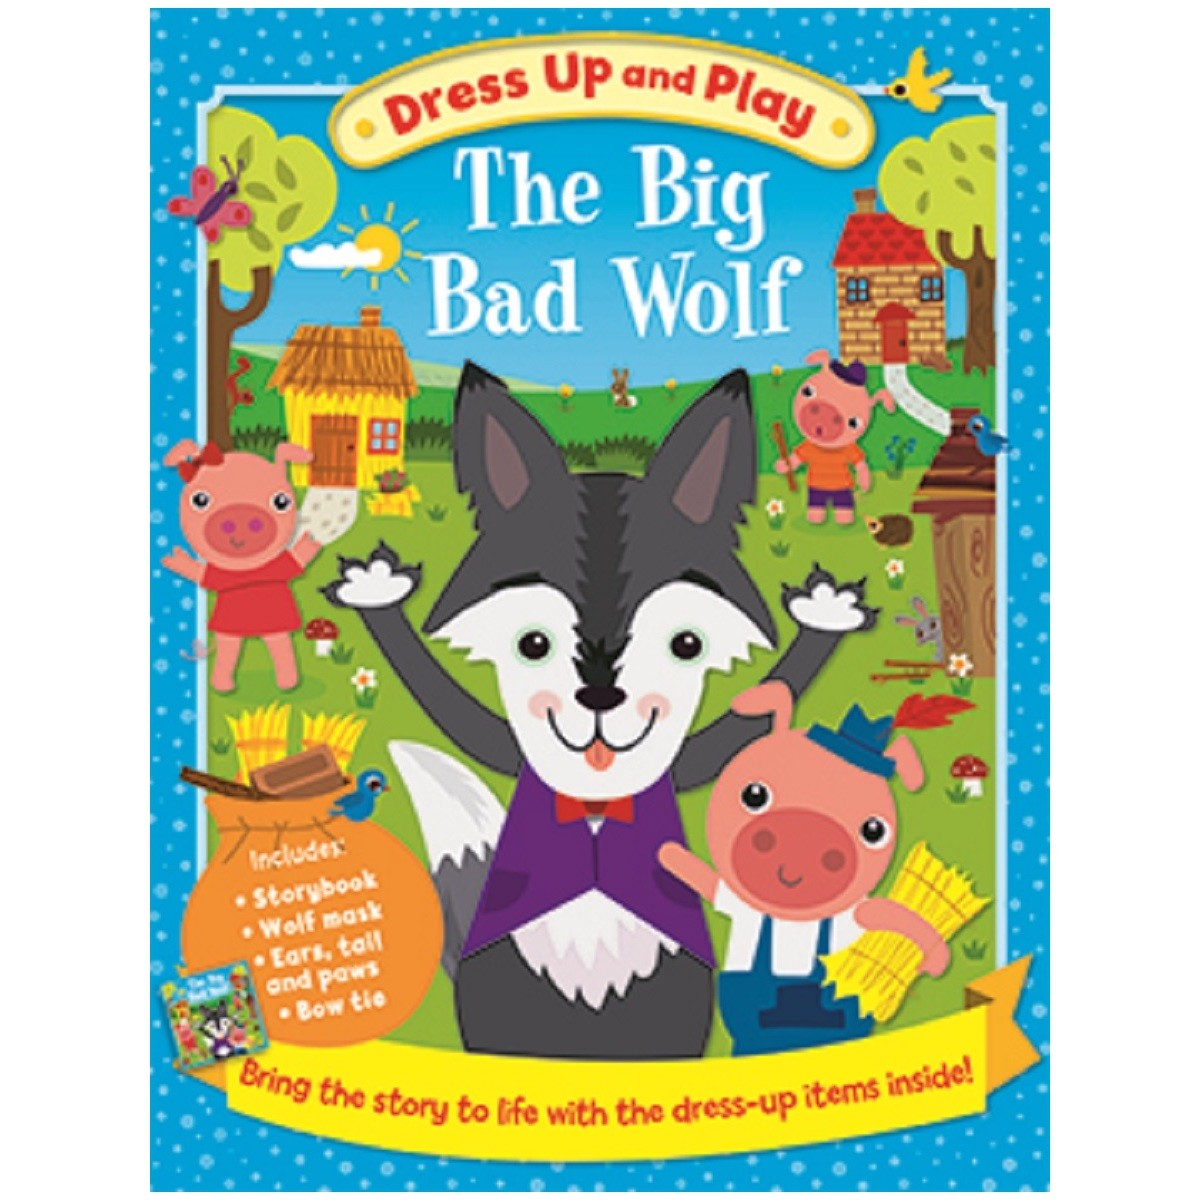 Bad Set Up Synonym The Big Bad Wolf Dress Up And Play Set Big W